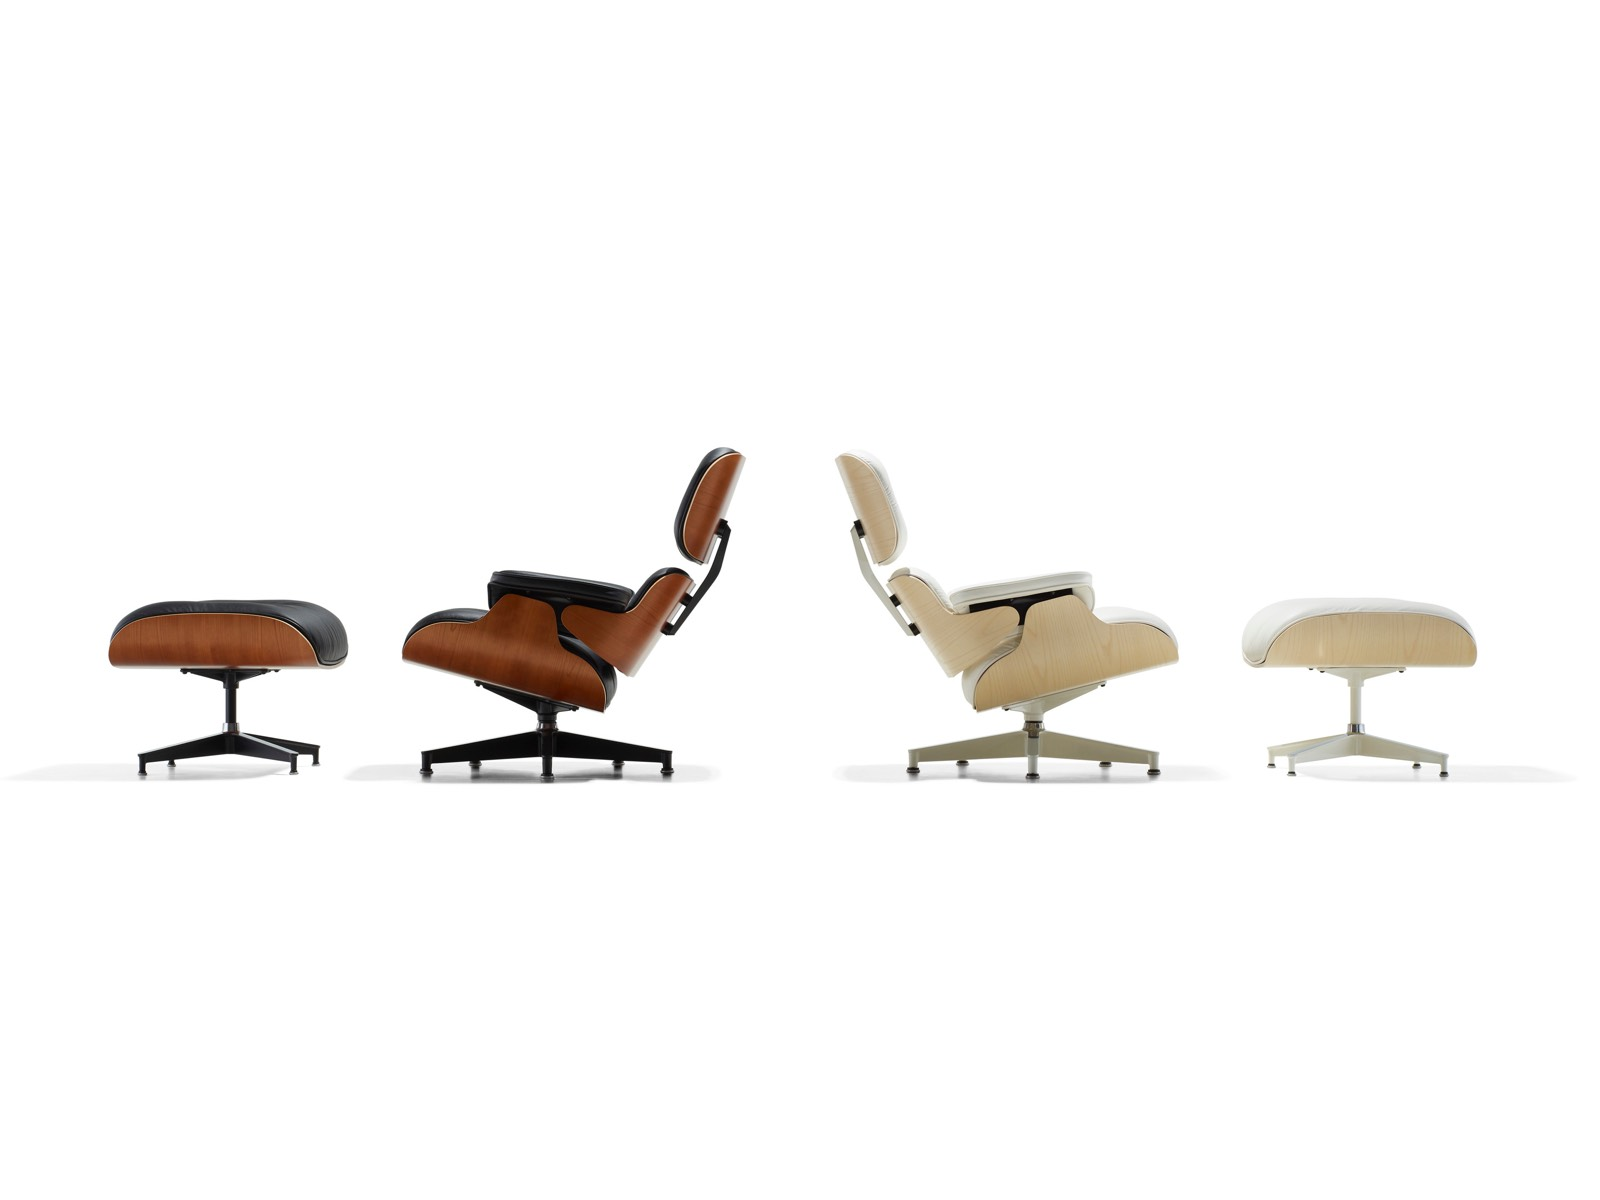 Sofa Eames Lounge Eames Lounge And Ottoman Lounge Chair Herman Miller